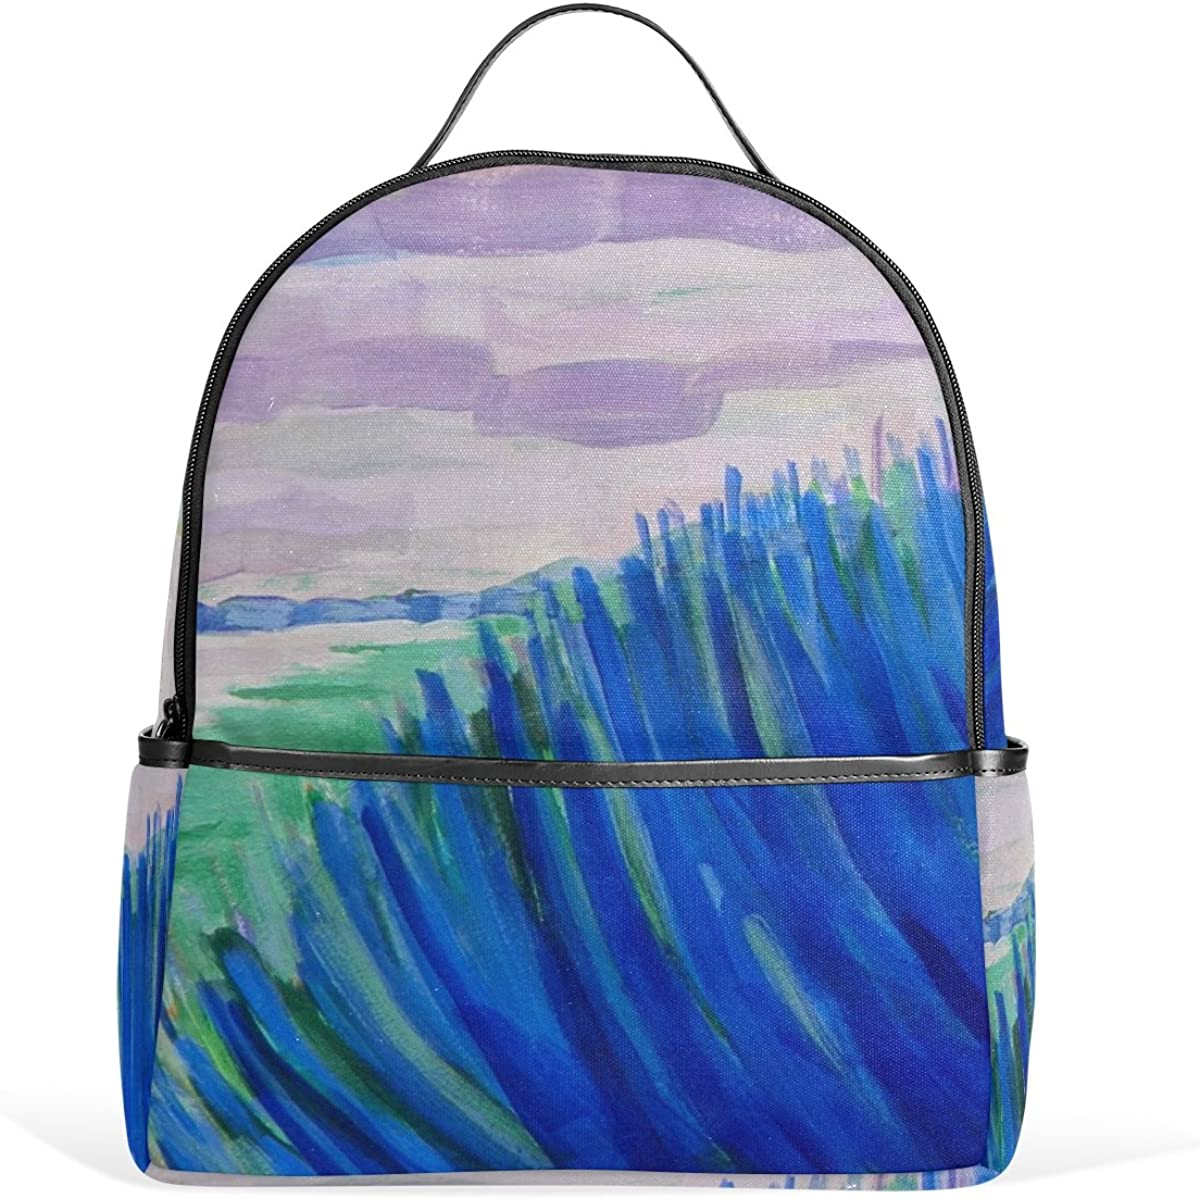 Mr.Weng Watercolor Art Printed Canvas Backpack For Girl and Children